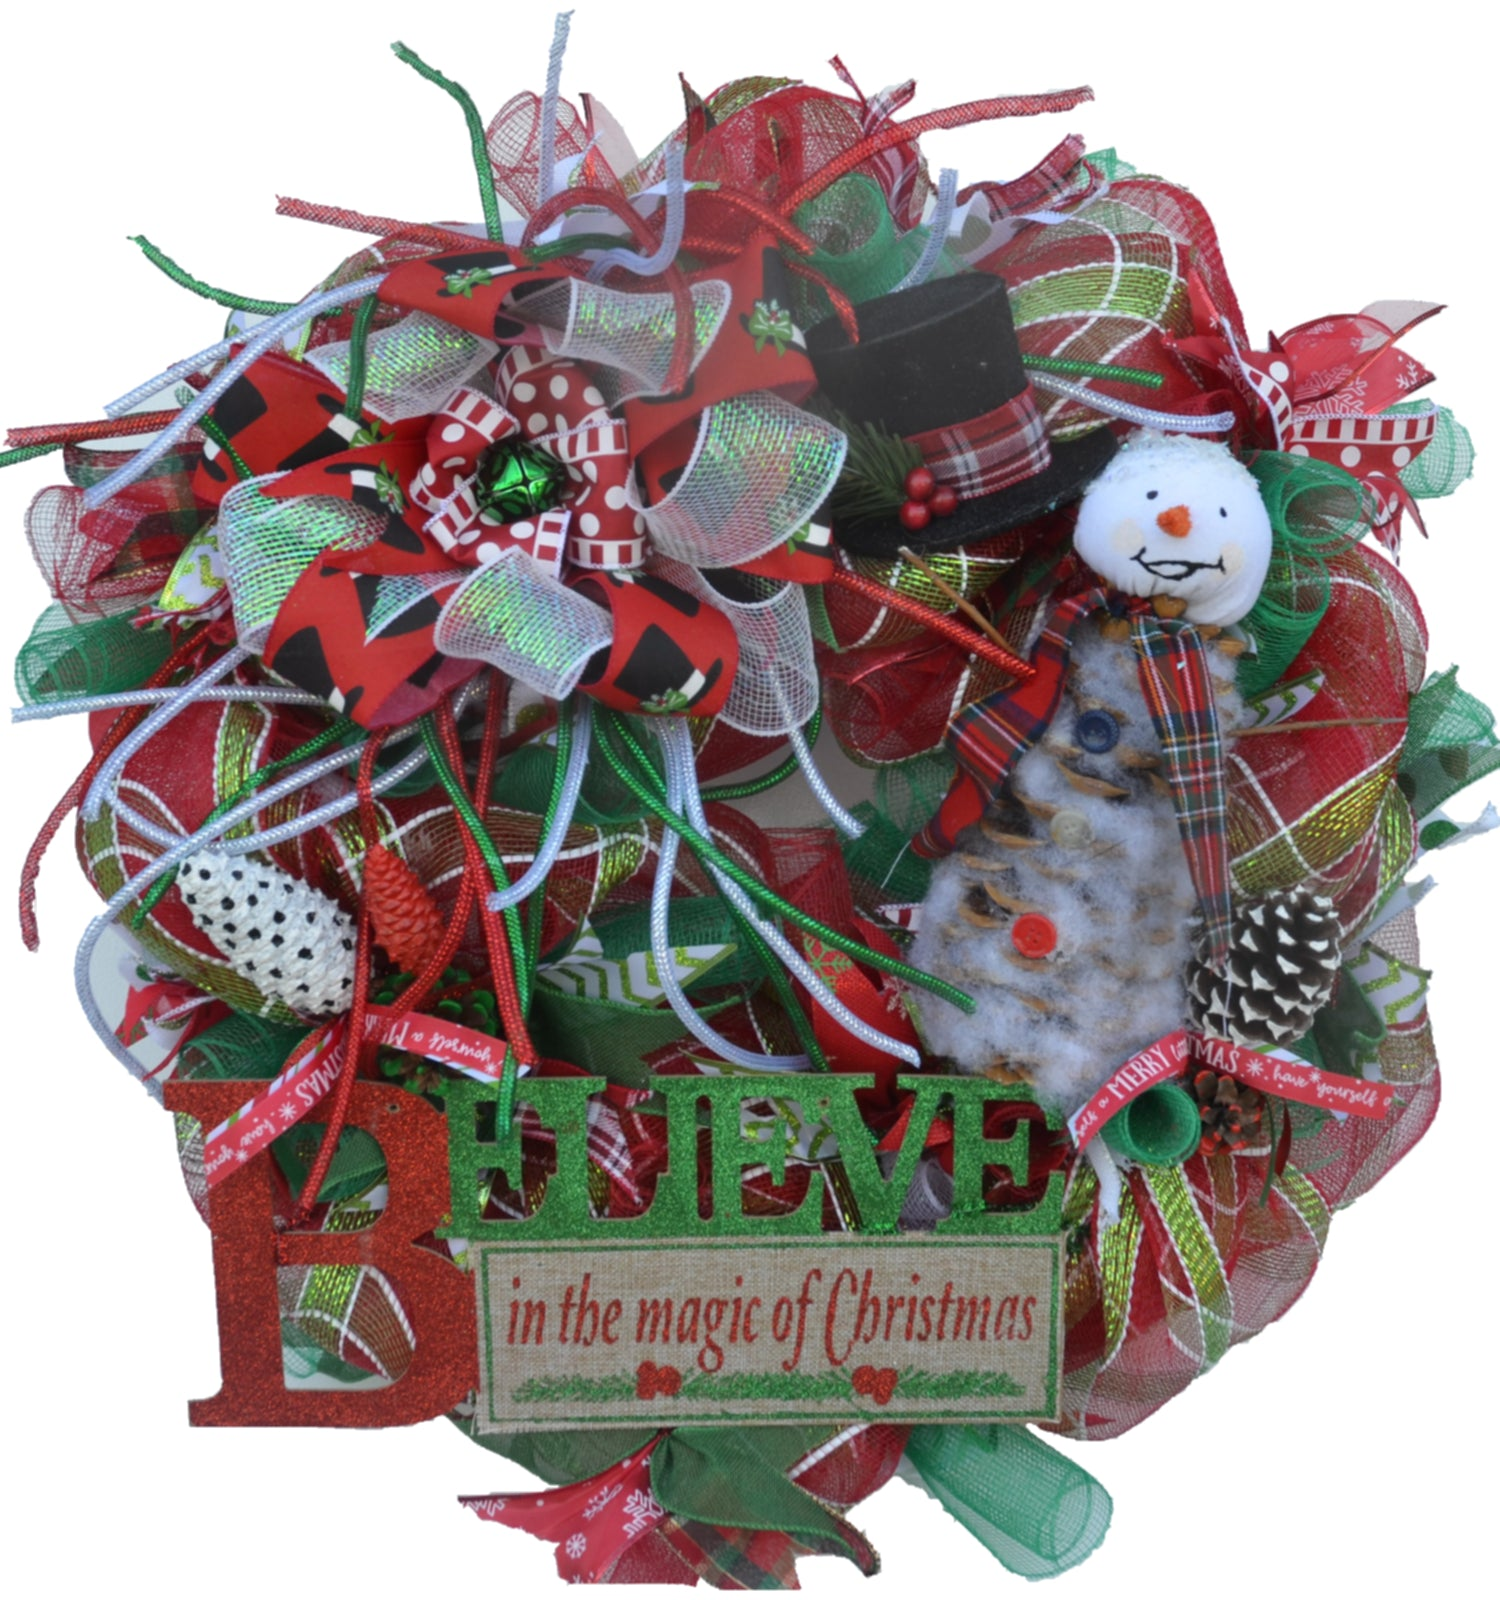 "Believe In the magic of Christmas 2019 LIMITED EDITION Wreath Deco Mesh 29.5"" x 28.5"" x 6""+"